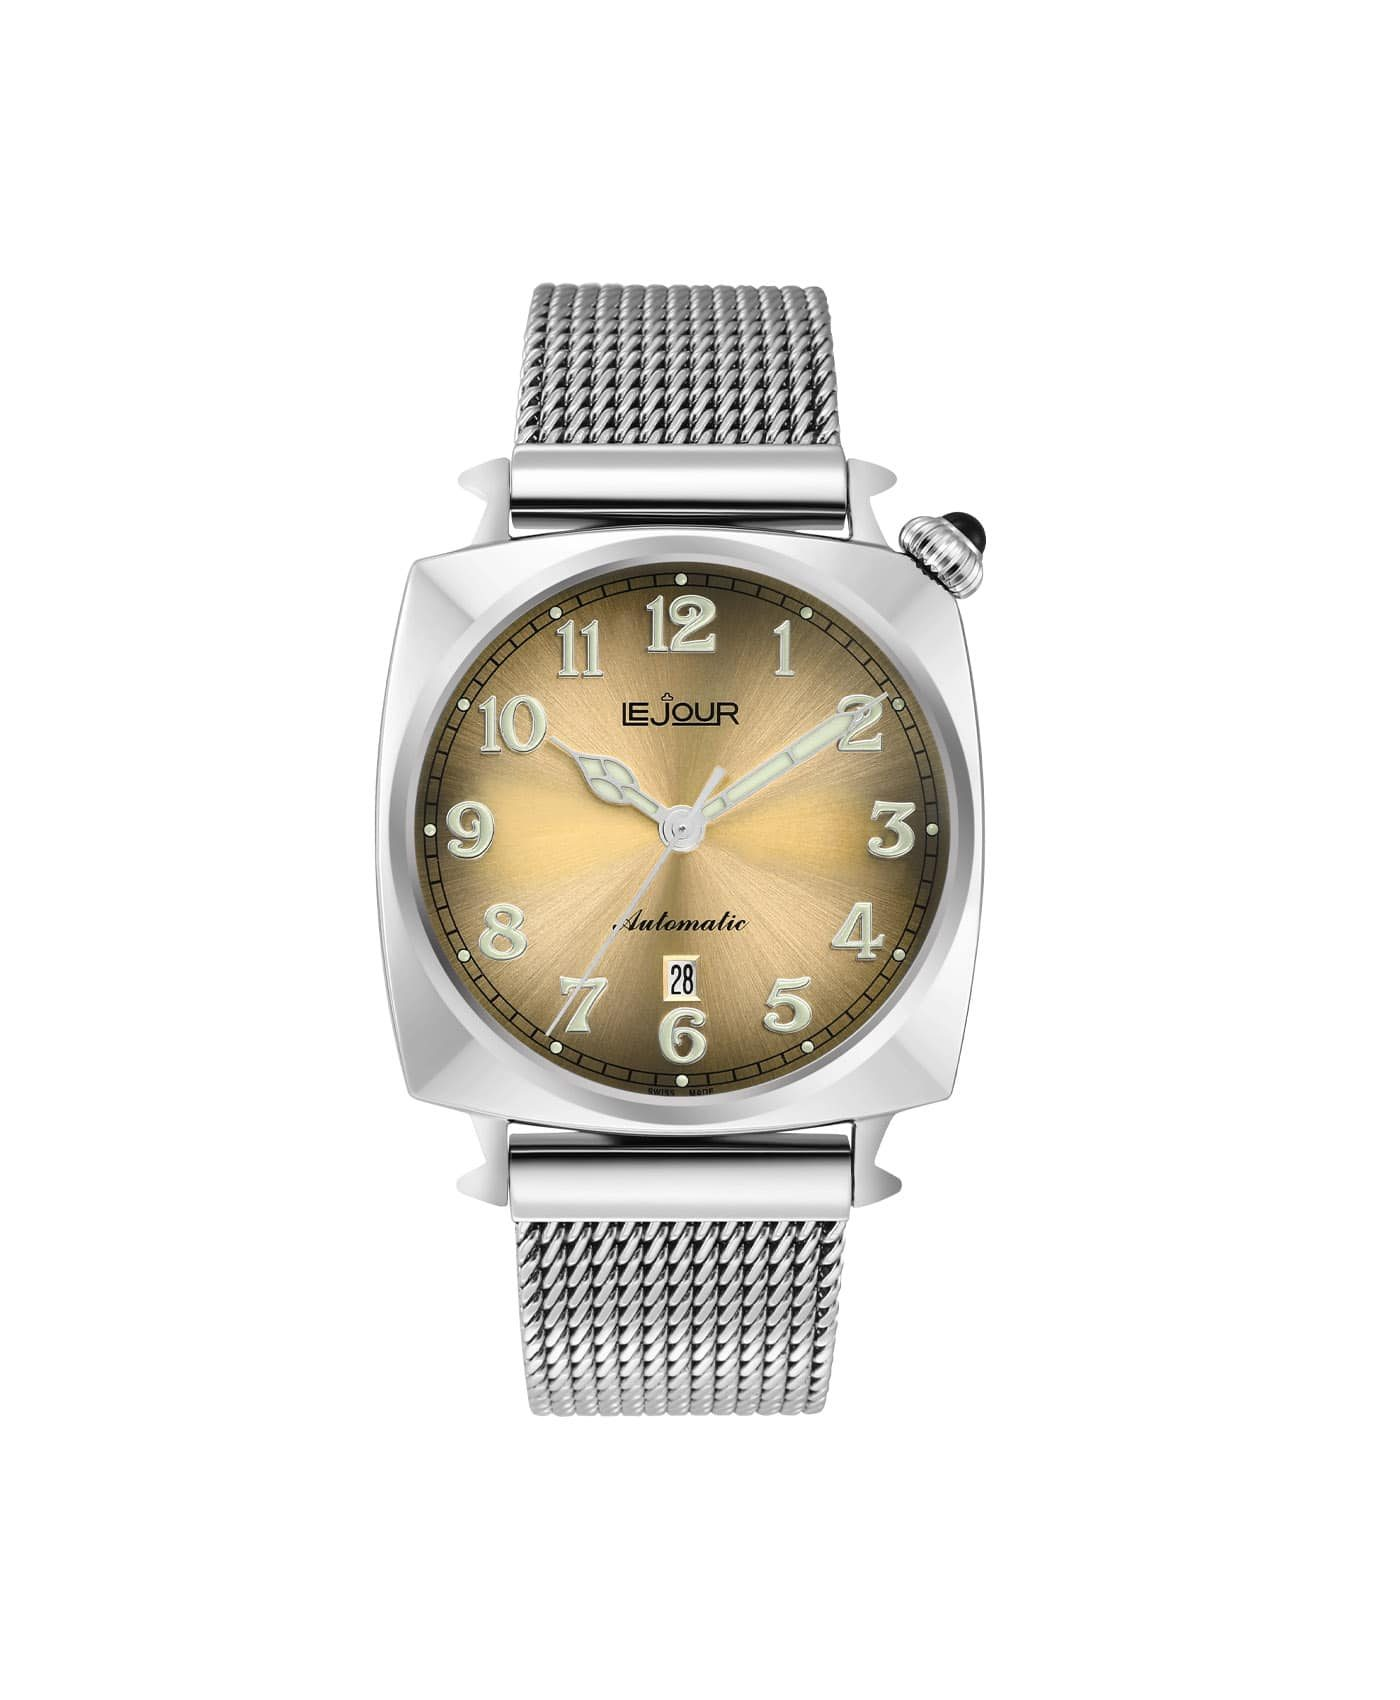 LJ-HR-005 champagne sunray dial Front